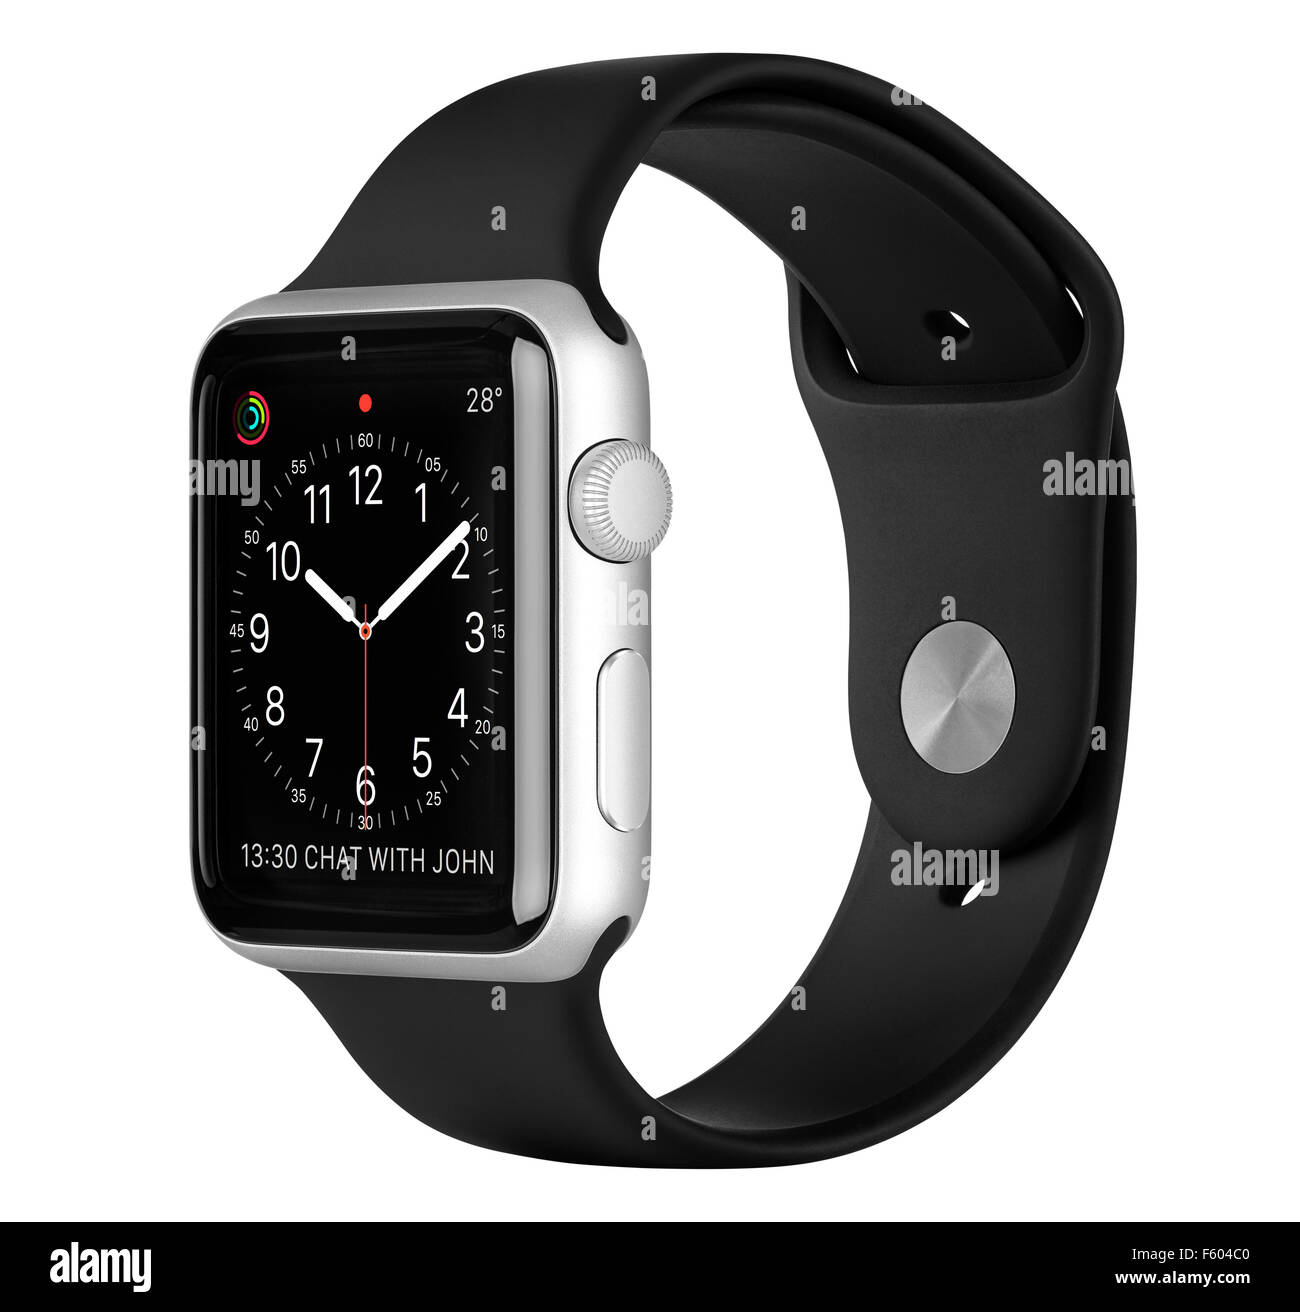 Varna, Bulgaria - October 16, 2015: Apple Watch Sport 42mm Silver Aluminum Case with Black Band with clock face - Stock Image